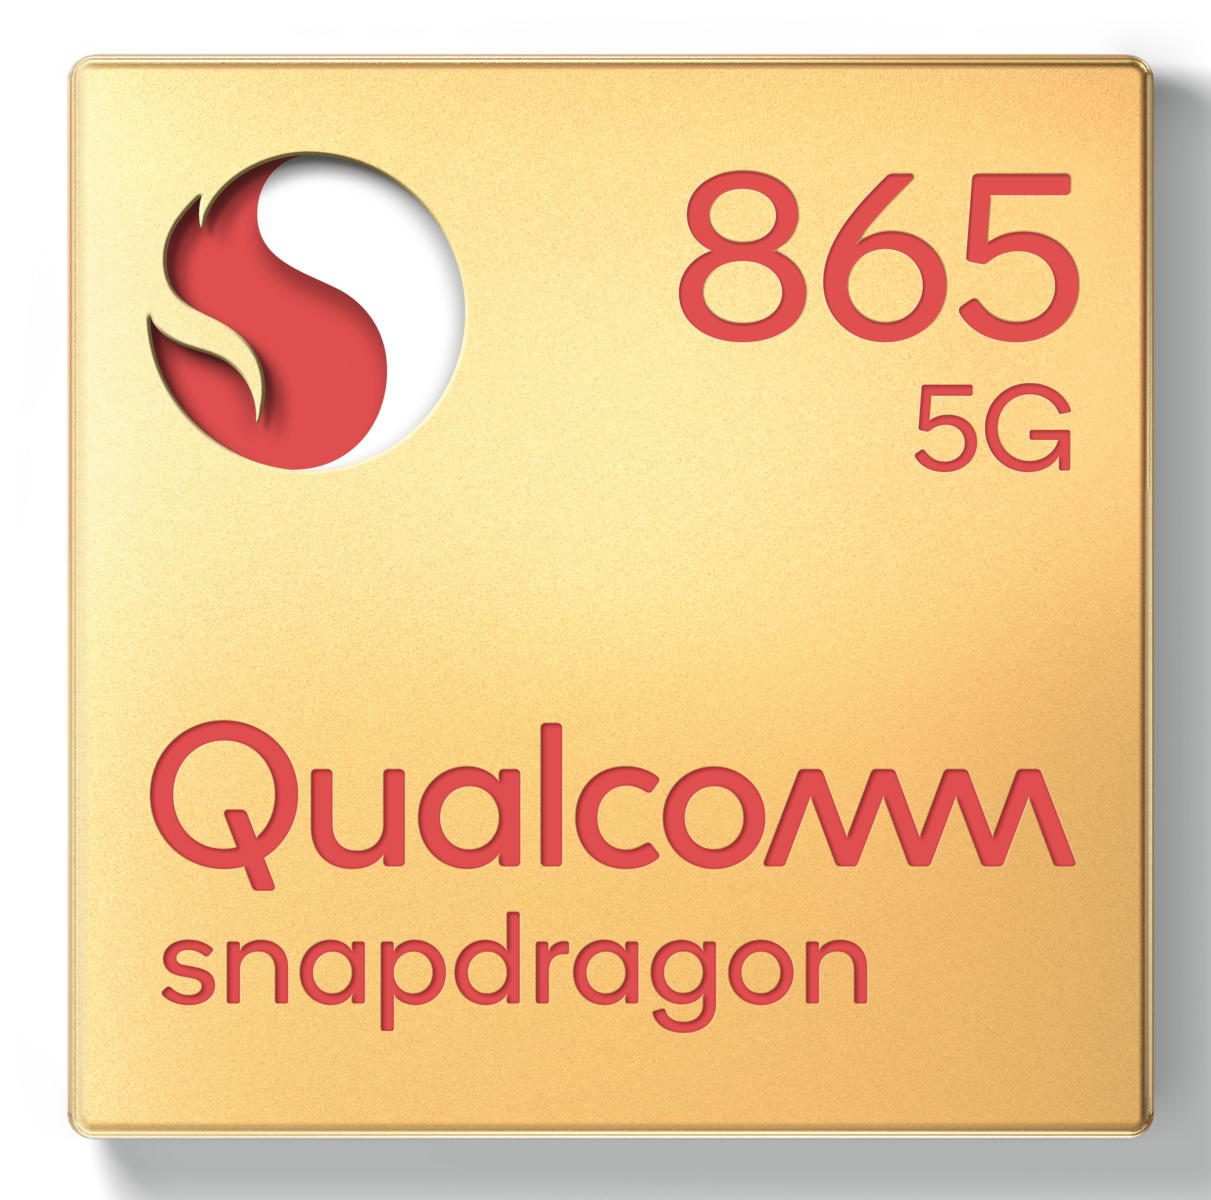 Qualcomm's Snapdragon 865 is Next Year's Big Processor